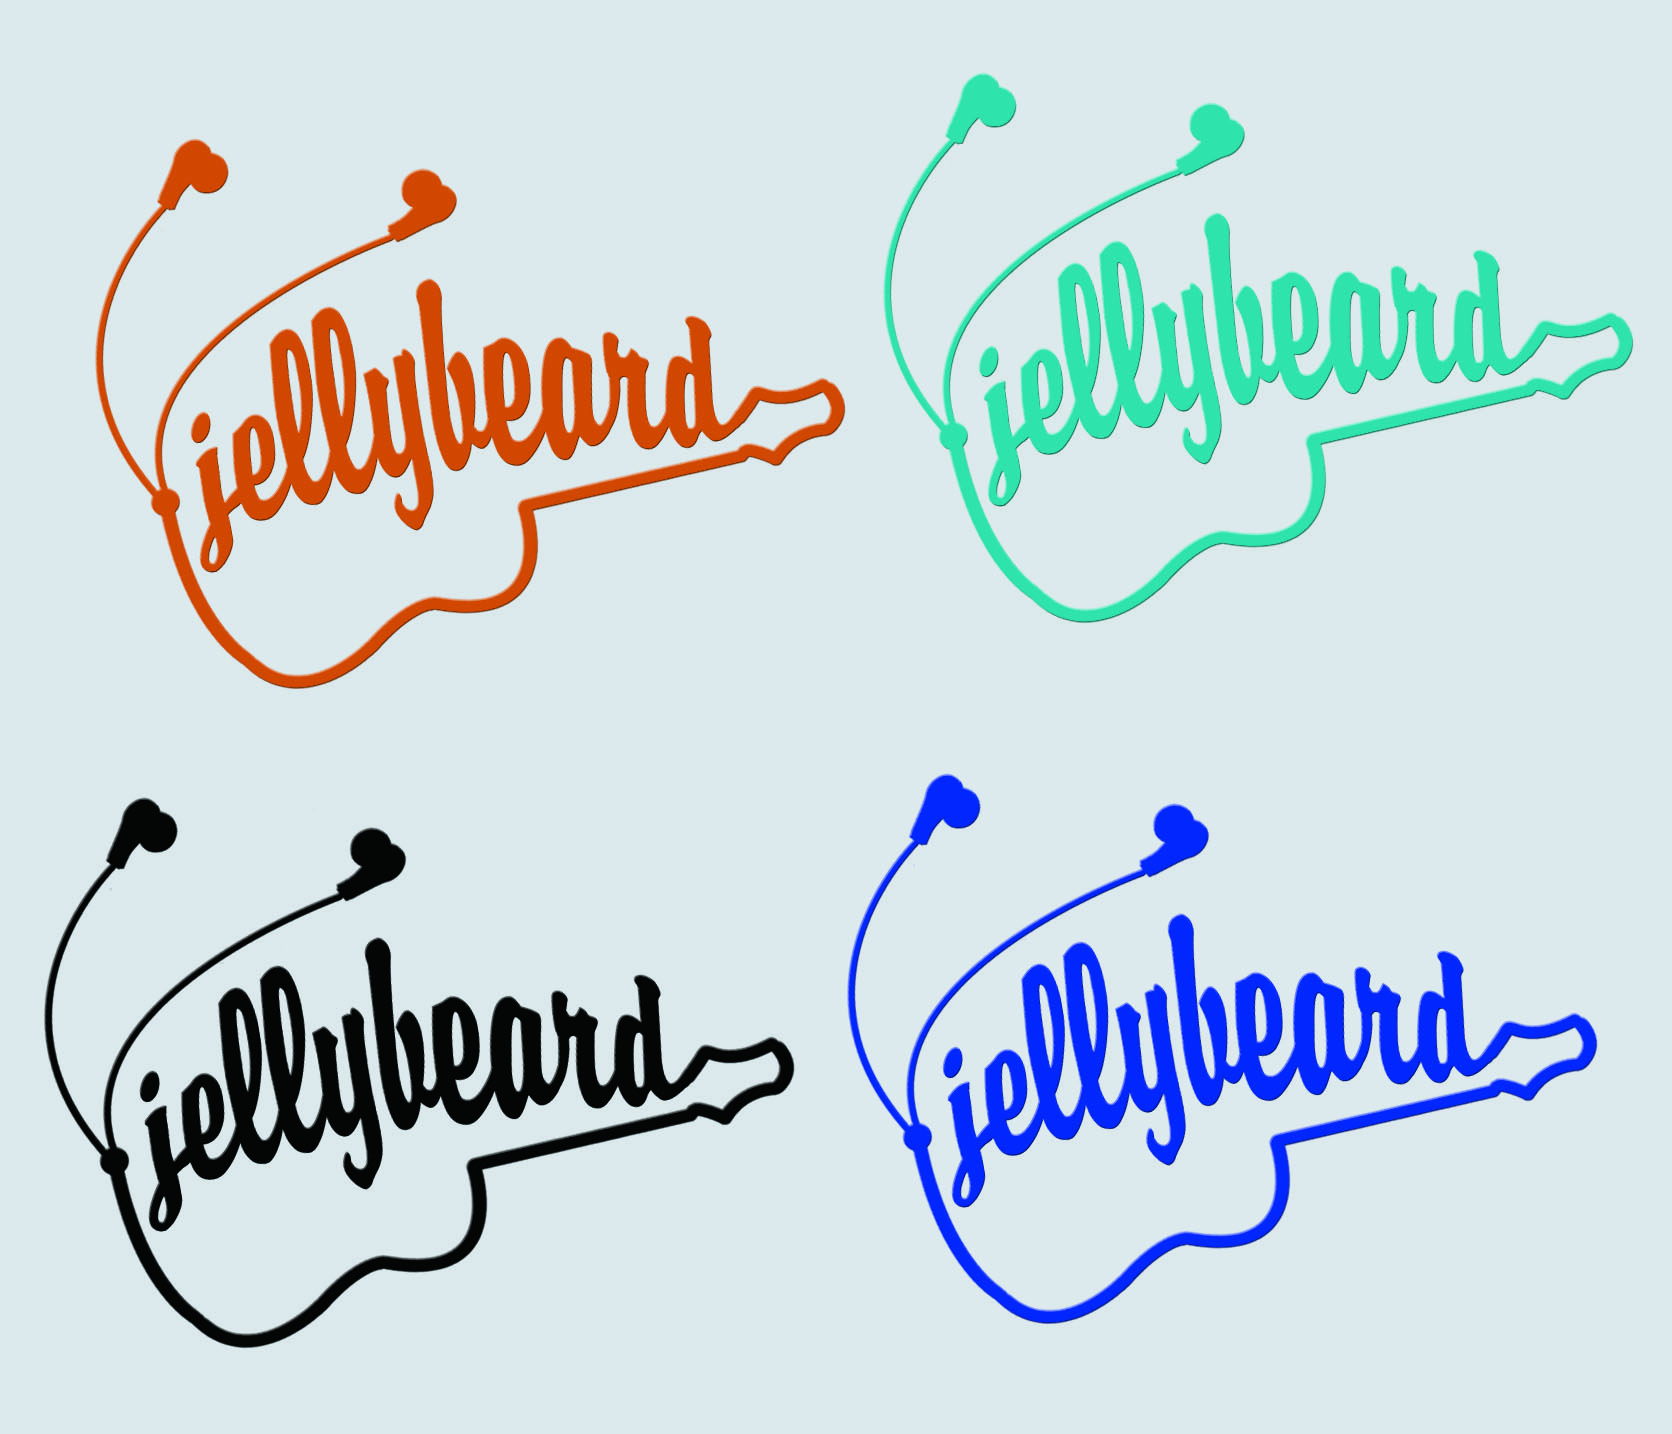 Logo Design by Arqui ACOSTA - Entry No. 8 in the Logo Design Contest jellybeard Logo Design.